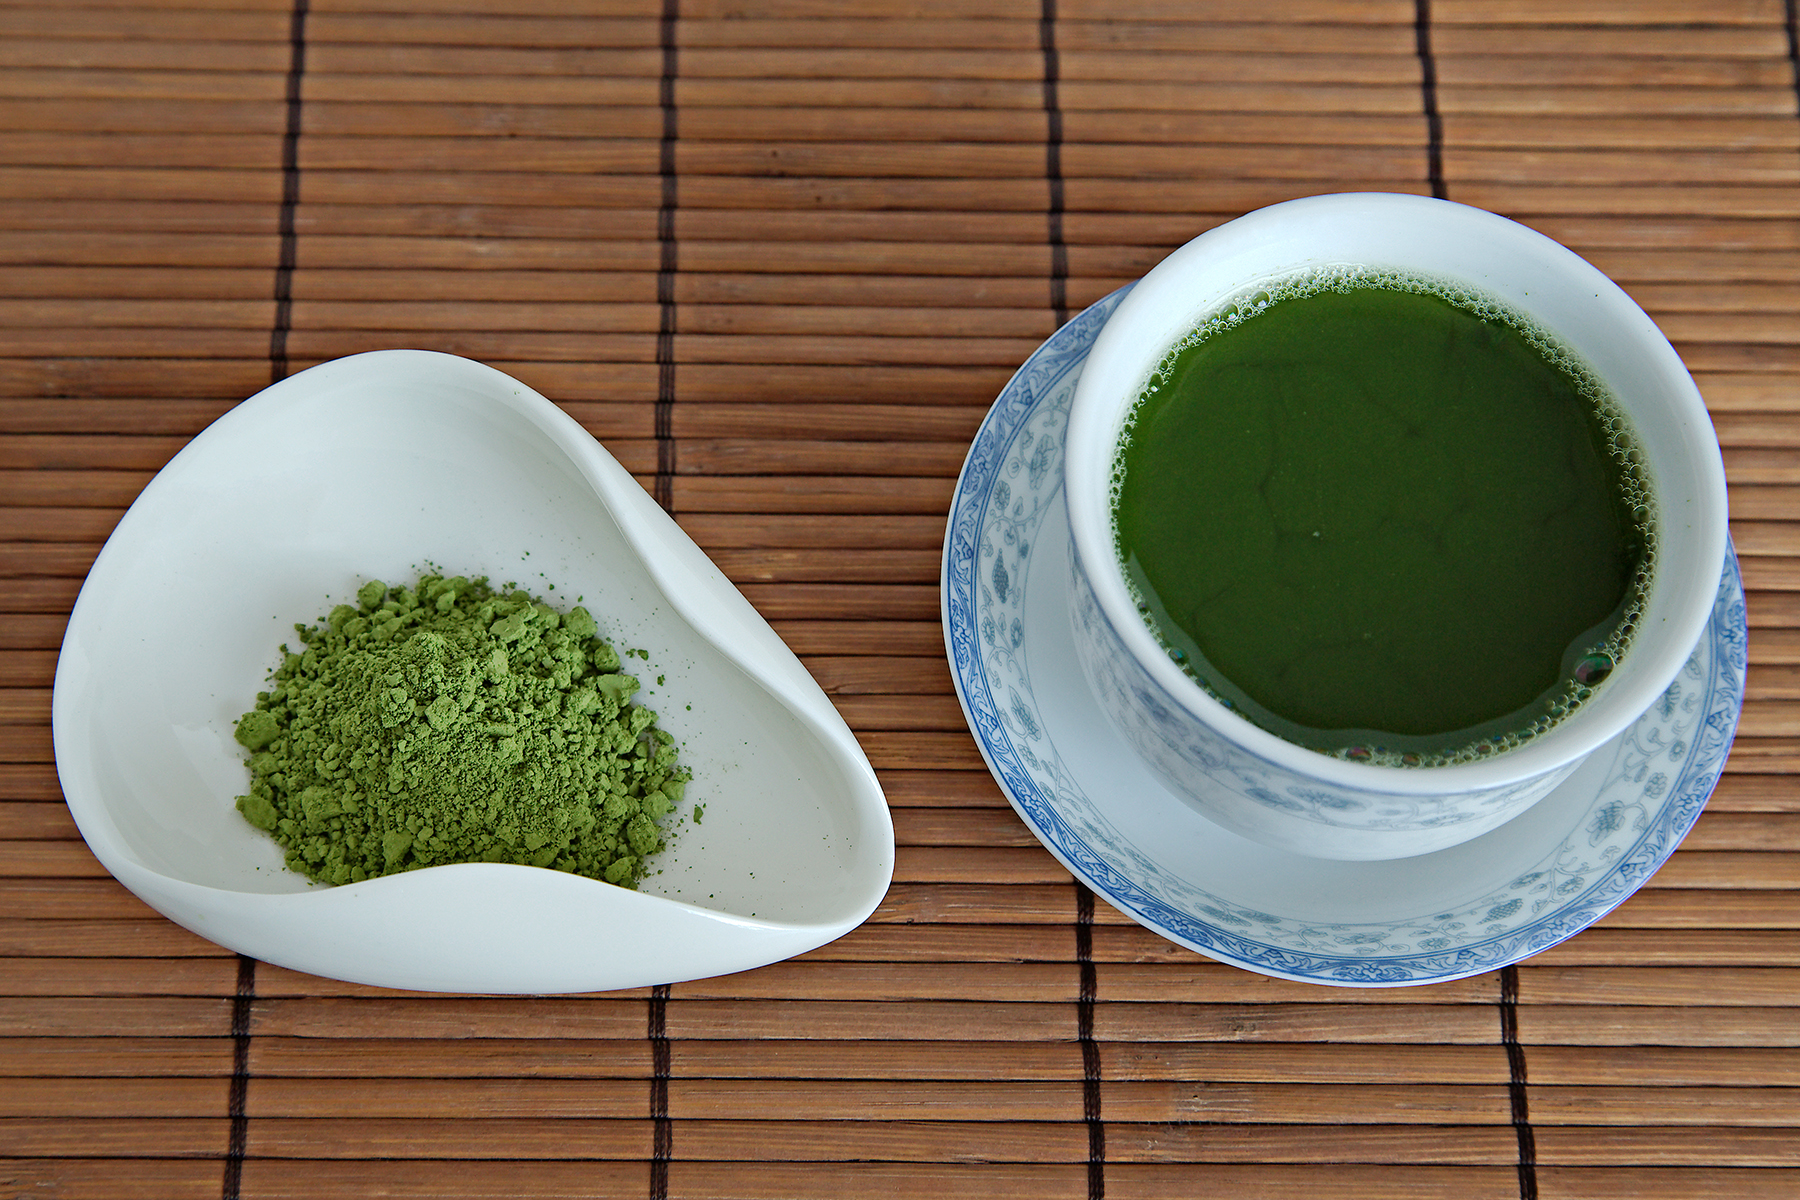 Tea Review: Teas' Tea Matcha - Ito En